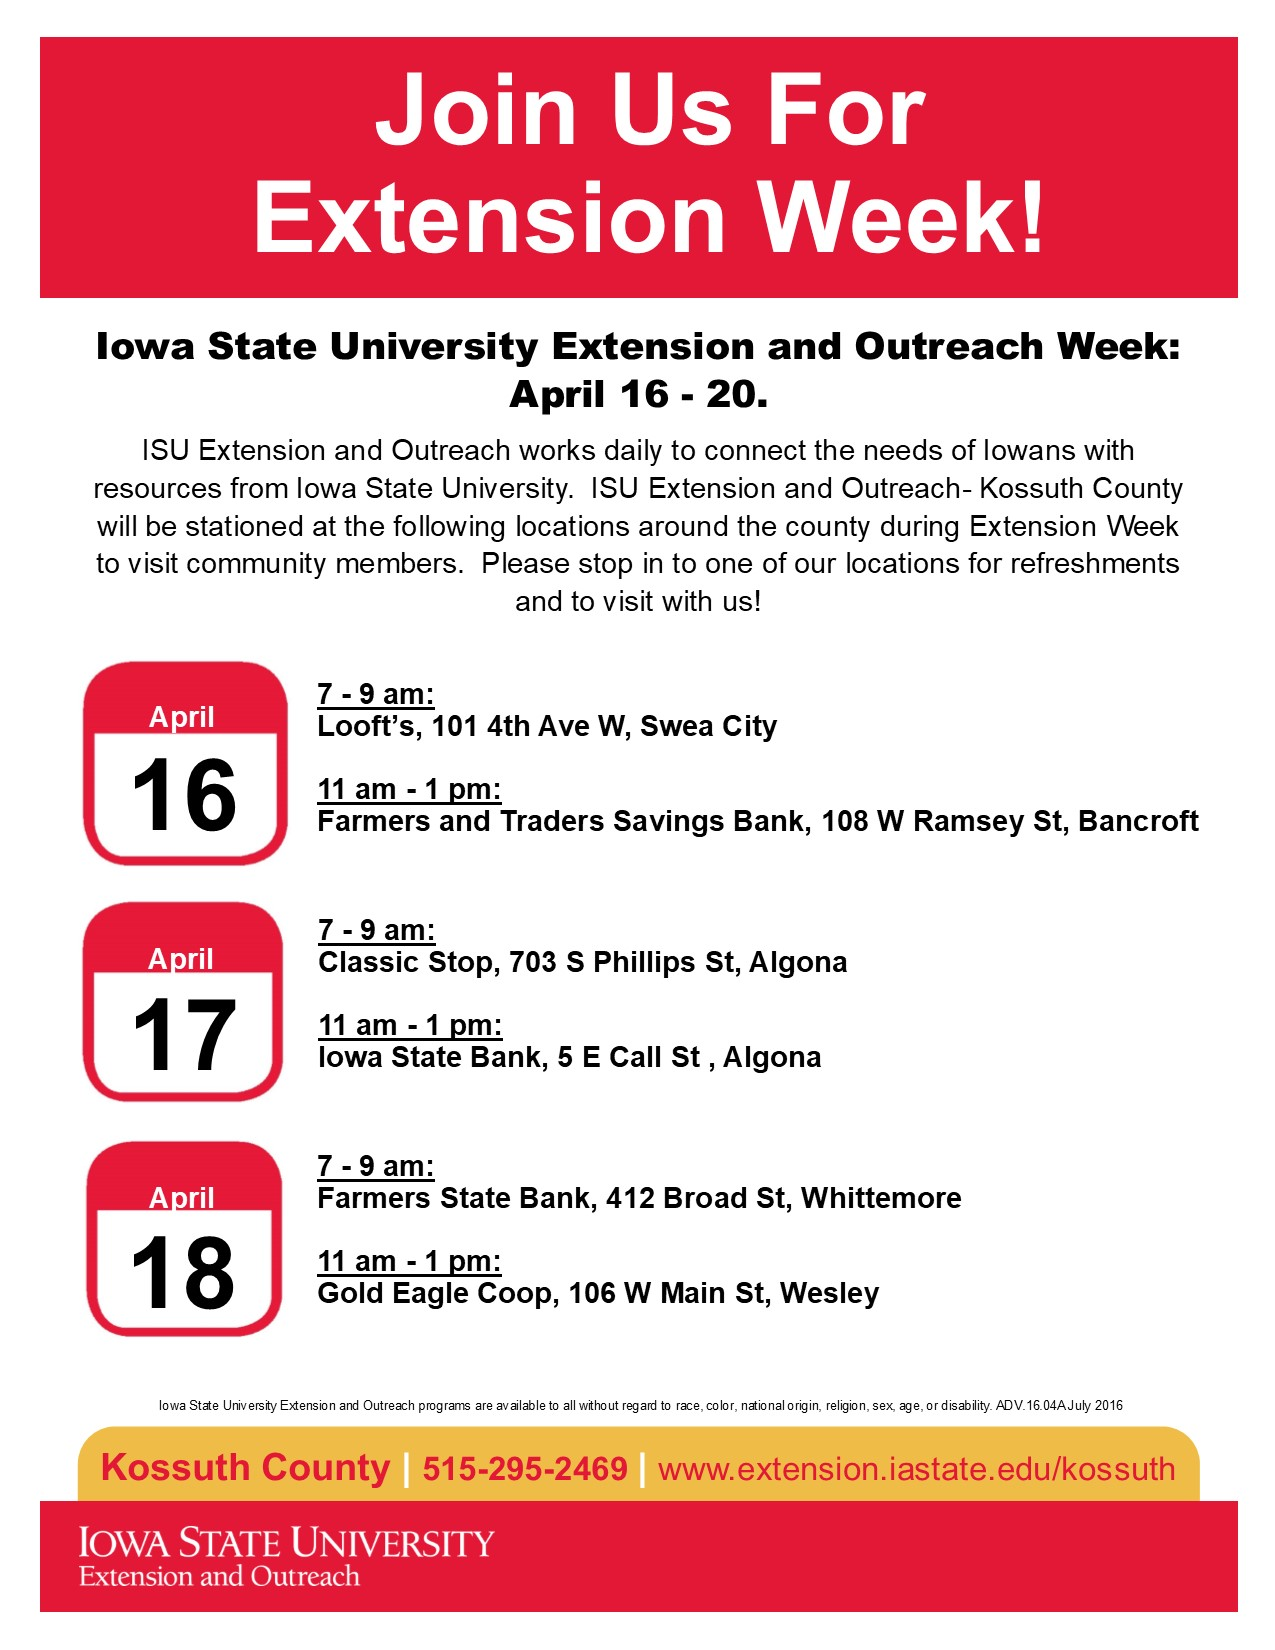 "ALGONA, Iowa – Iowa State University Extension and Outreach Week is April 16-21.  ISU Extension and Outreach works daily to connect the needs of Iowans with resources from Iowa State University. Our unique communities are what makes Kossuth County special.  Extension and Outreach in Kossuth County works to connect our communities with the research and resources of Iowa State University to make us a #STRONG IOWA and solve today's problems and prepare for the future.  ""ISU Extension and Outreach- Kossuth County will be stationed at locations around the county during Extension Week to visit community members!  Please stop in to one of our locations for refreshments and to visit with us,""  says Darcie Kramer, Program Coordinator at the Extension Office.  ""We want to show our appreciation to the communities of Kossuth County for utilizing Extension and Outreach and let everyone know what we are all about.""  The schedule for the Extension week visits are as follows:   Monday, April 16:         7am-9am – Loofts on 9- Swea City             11am – 1pm – Farmers and Traders Savings Bank – Bancroft Tuesday, April 17:         7am-9am – Classic Stop – Algona 		            11am – 1pm – Iowa State Bank – Algona Wednesday, April 18:   7am-9am – Farmers State Bank – Whittemore 		            11am-1pm – Gold Eagle Coop - Wesley  Along with the community visits, Kossuth County Extension and Outreach plans to run social media trivia contests, live video feeds, and have drawings all week long.  ""We want to have some fun, help people become more familiar with Extension and Outreach, and show our appreciation to our County,"" Kramer says.  Kossuth County community members are encouraged to wear Iowa State or 4-H gear throughout the week to help Extension and Outreach raise awareness."